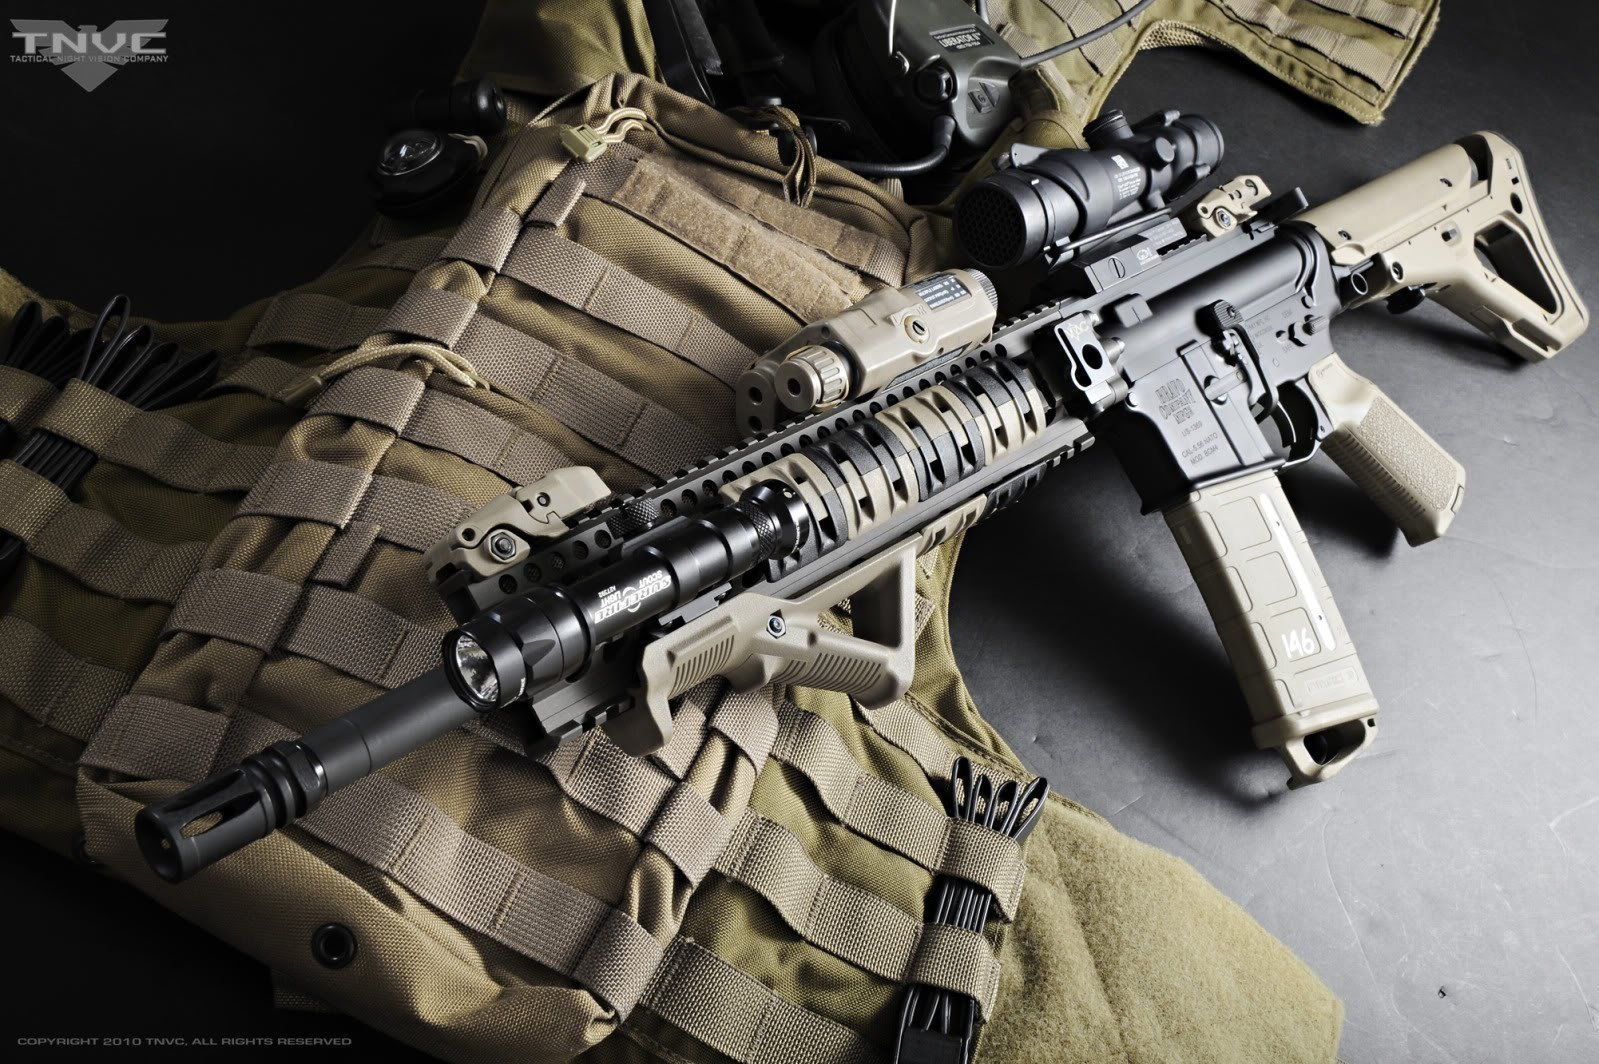 Assault Rifle Wallpaper and Background Image 1599x1064 ID 1599x1064